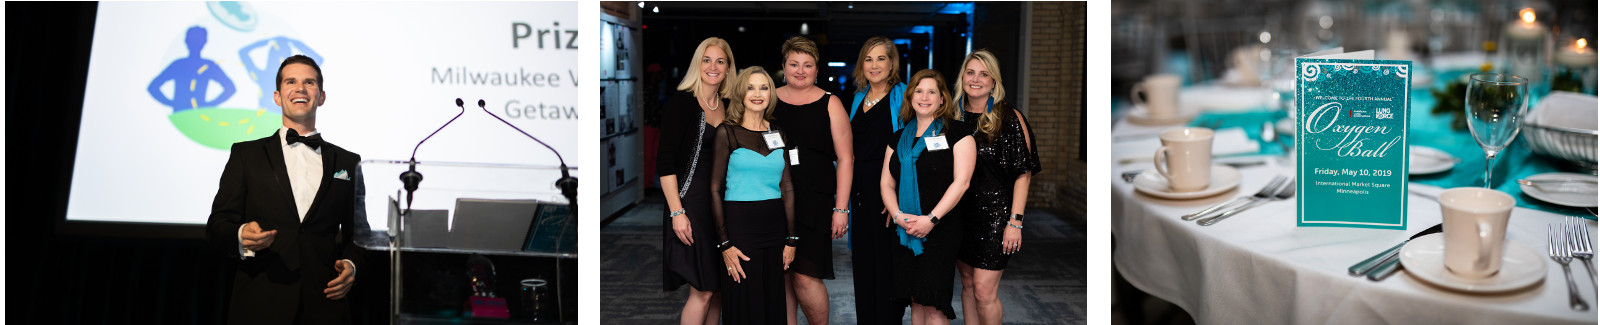 Minnesota Oxygen Ball - American Lung Association | LUNG FORCE